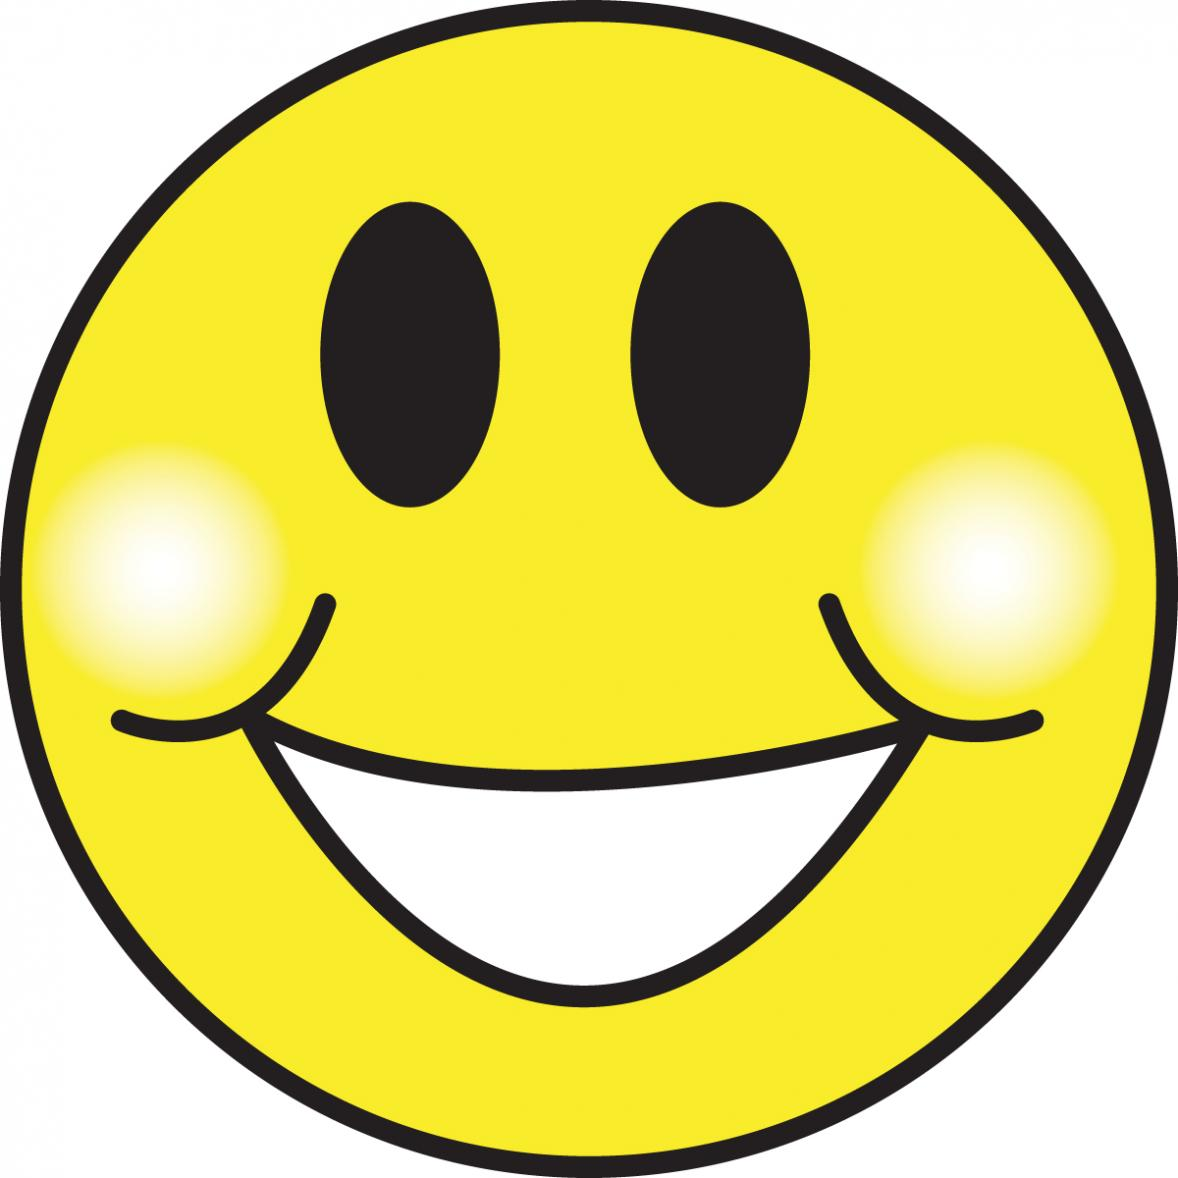 Smileys clipart thumbs up Smiley clipart up face Smiley